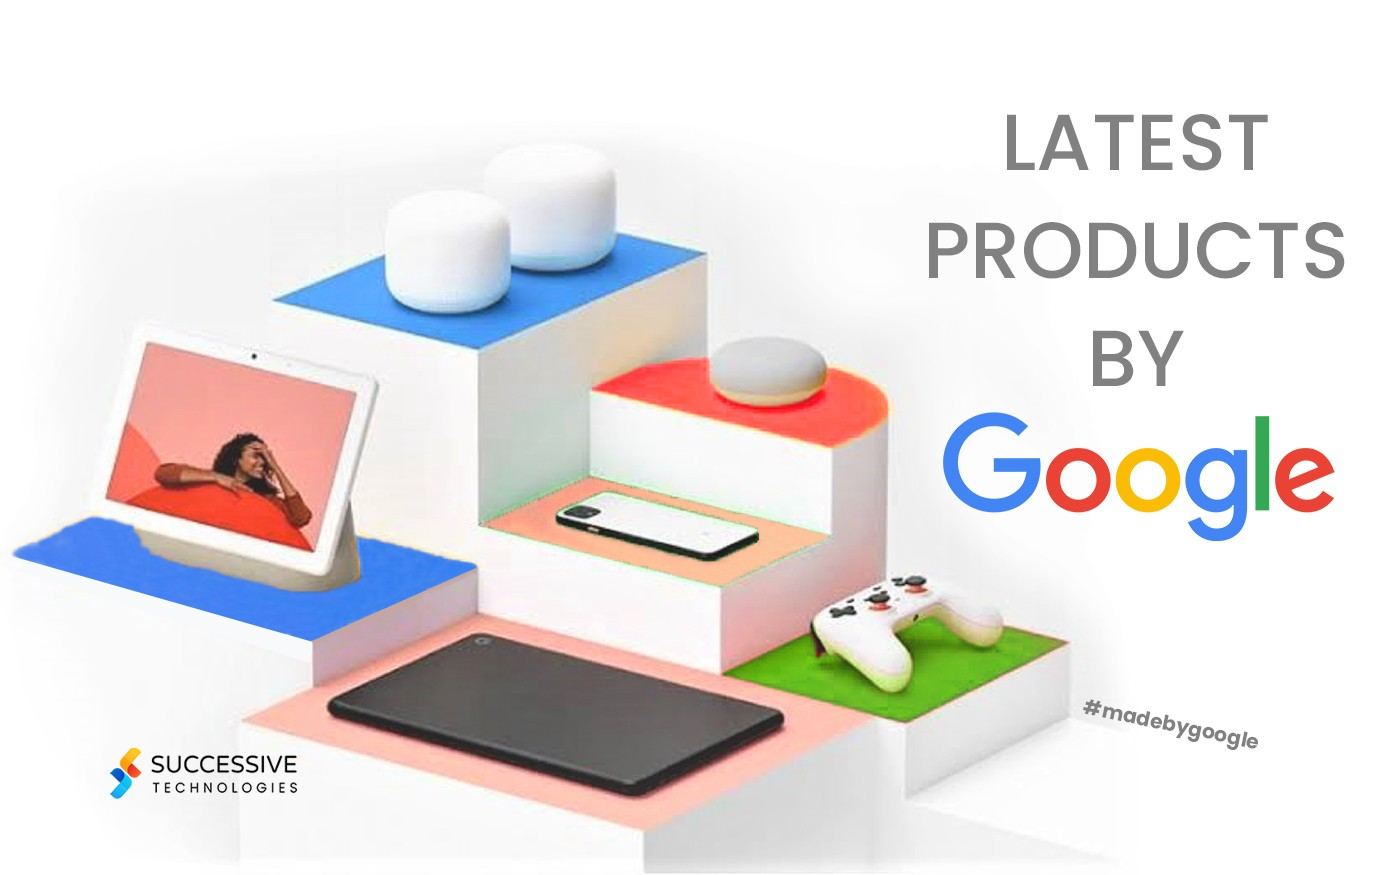 Google Launched Products